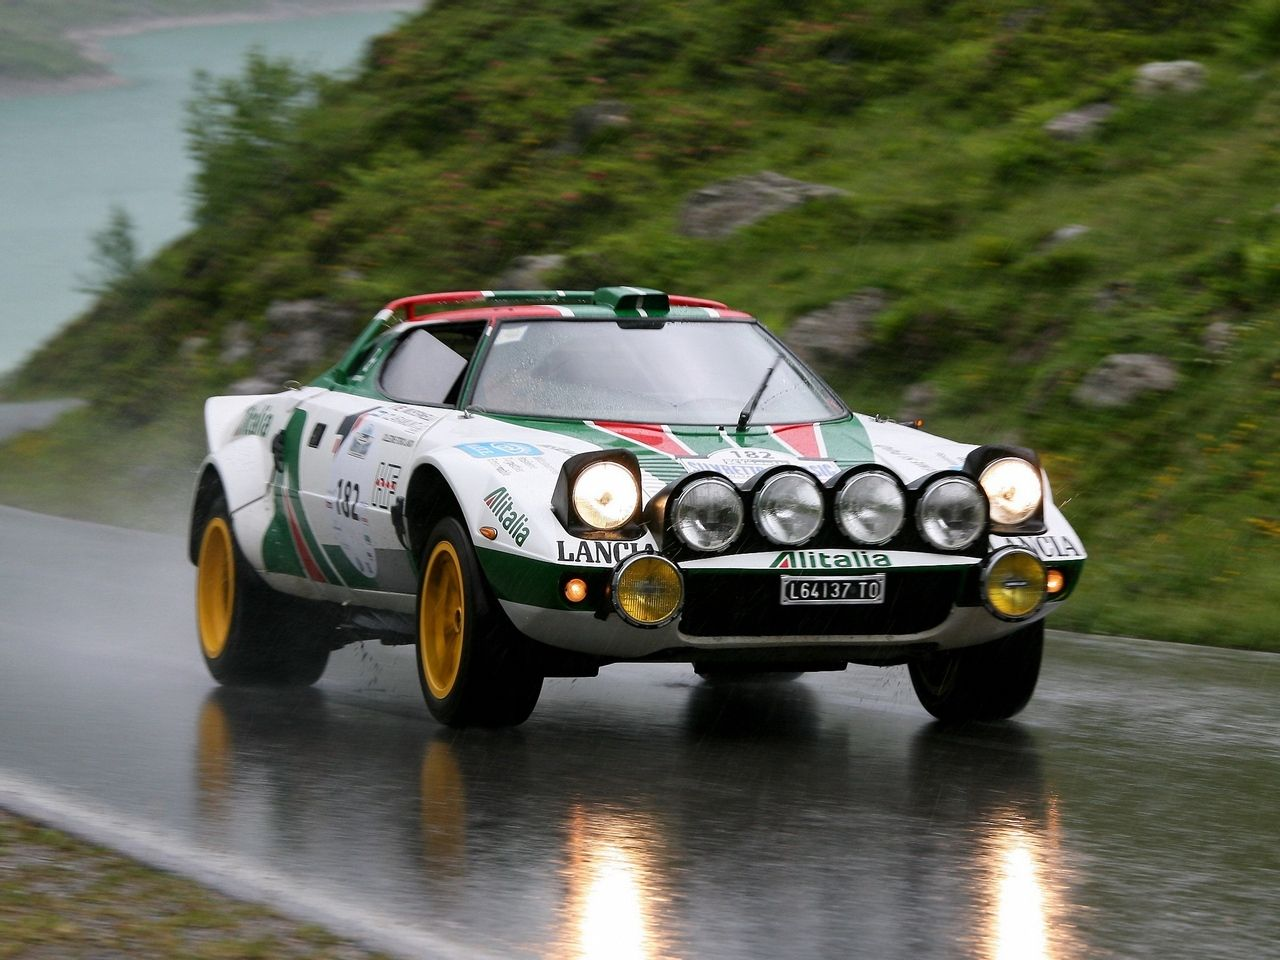 lancia stratos | carsickness | pinterest | cars, rally and rally car